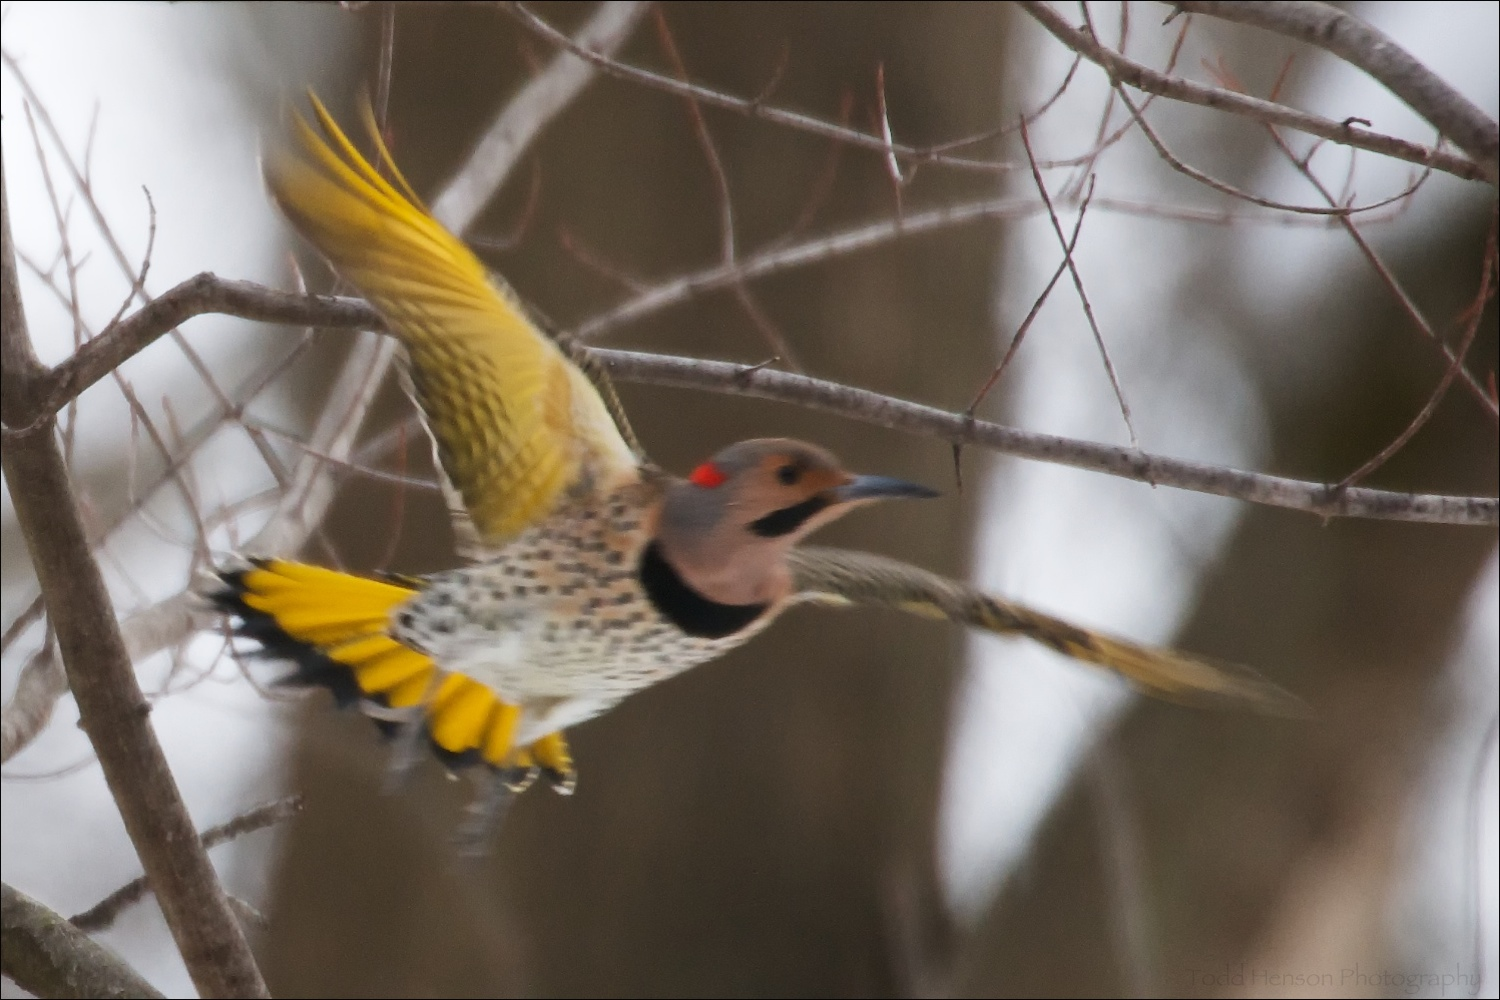 Male Northern Flicker in flight. The bird is out of focus, but notice the bright yellow color under the wings and tail.